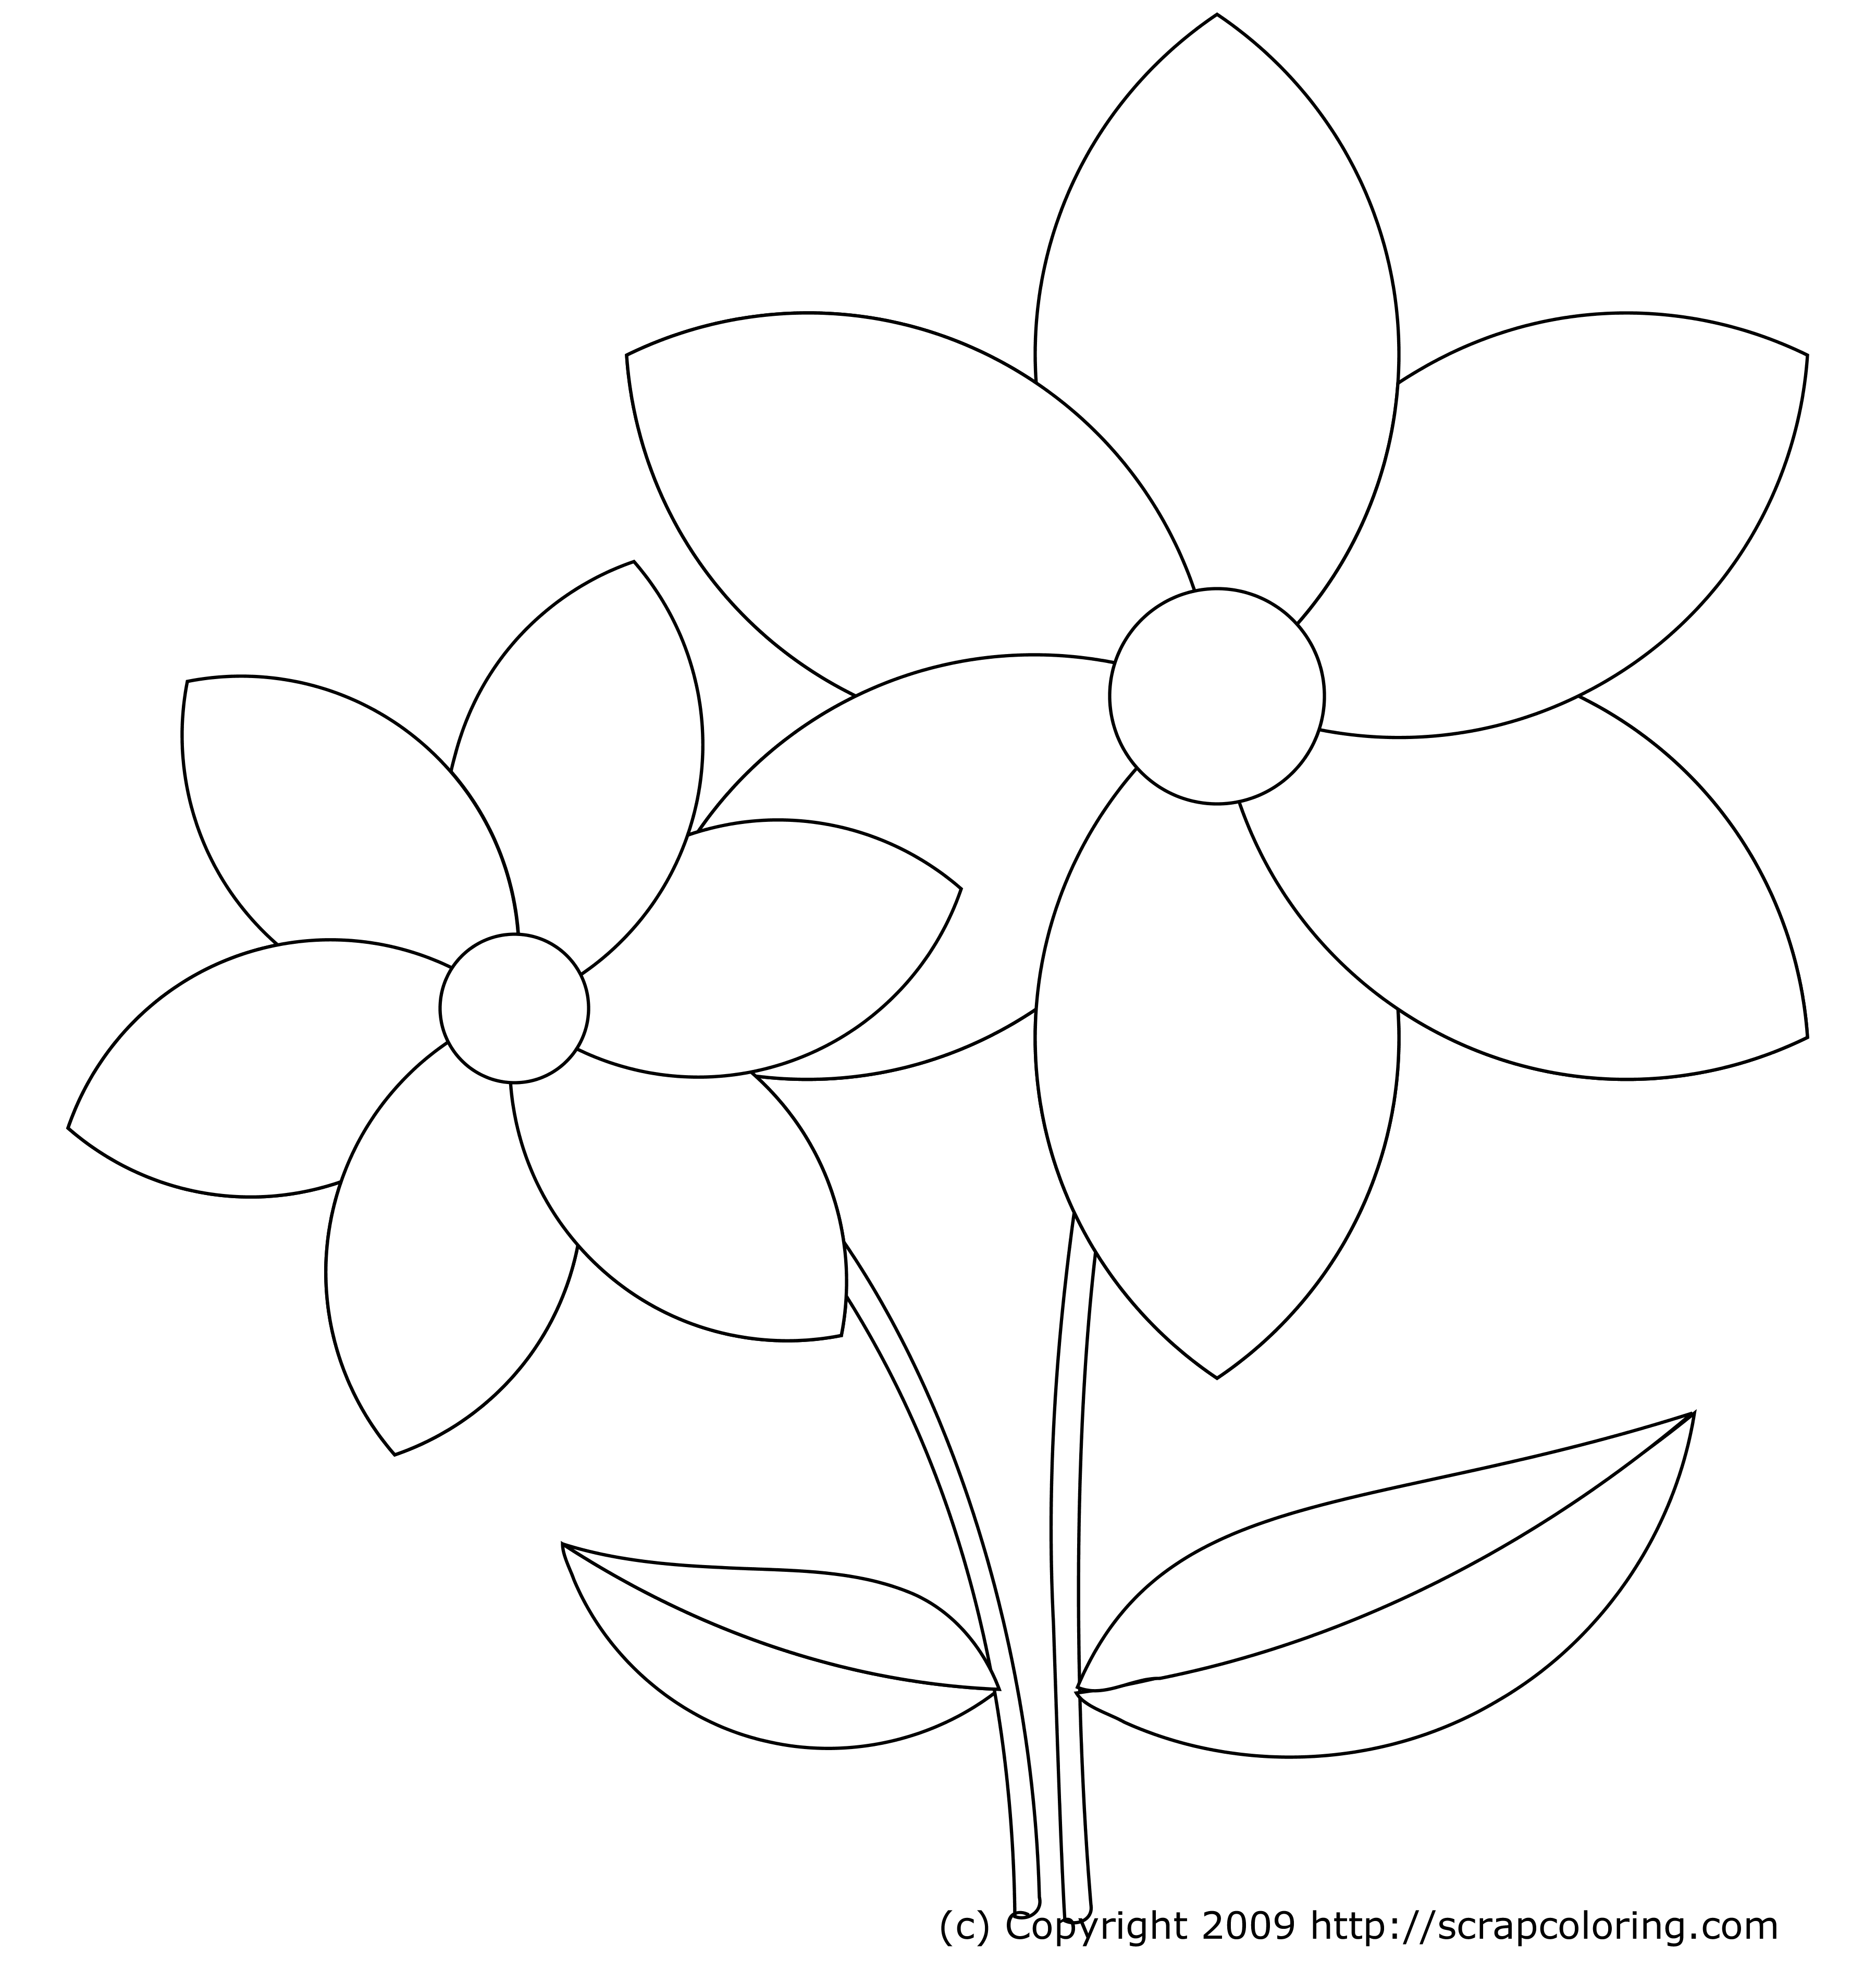 Easy Coloring Pages Of Flowers - High Quality Coloring Pages